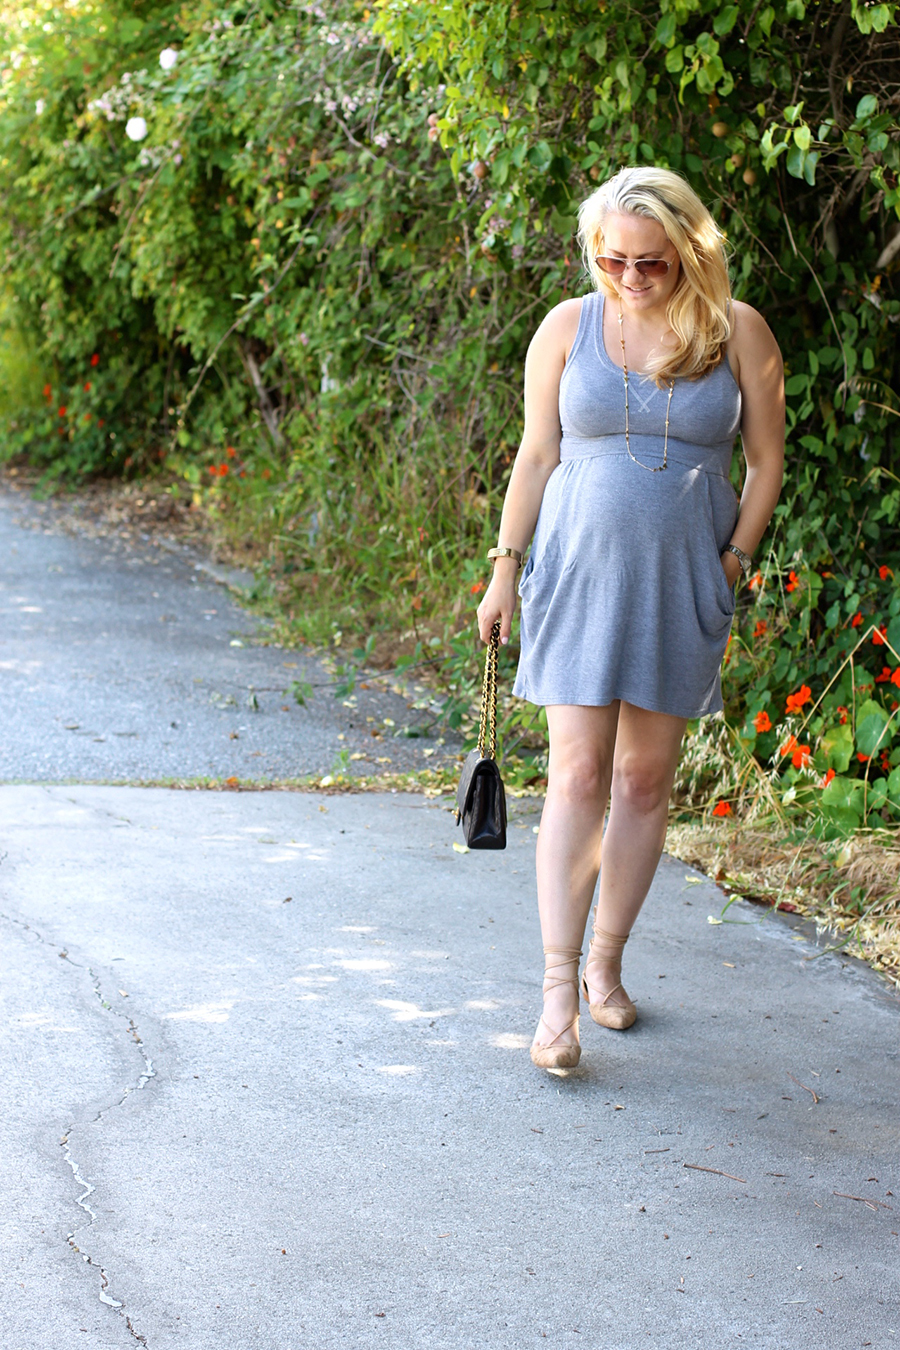 Grey Jersey Mini Dress-Maternity Style-Outfit Inspiration-Pregnancy Style-Have Need Want 4